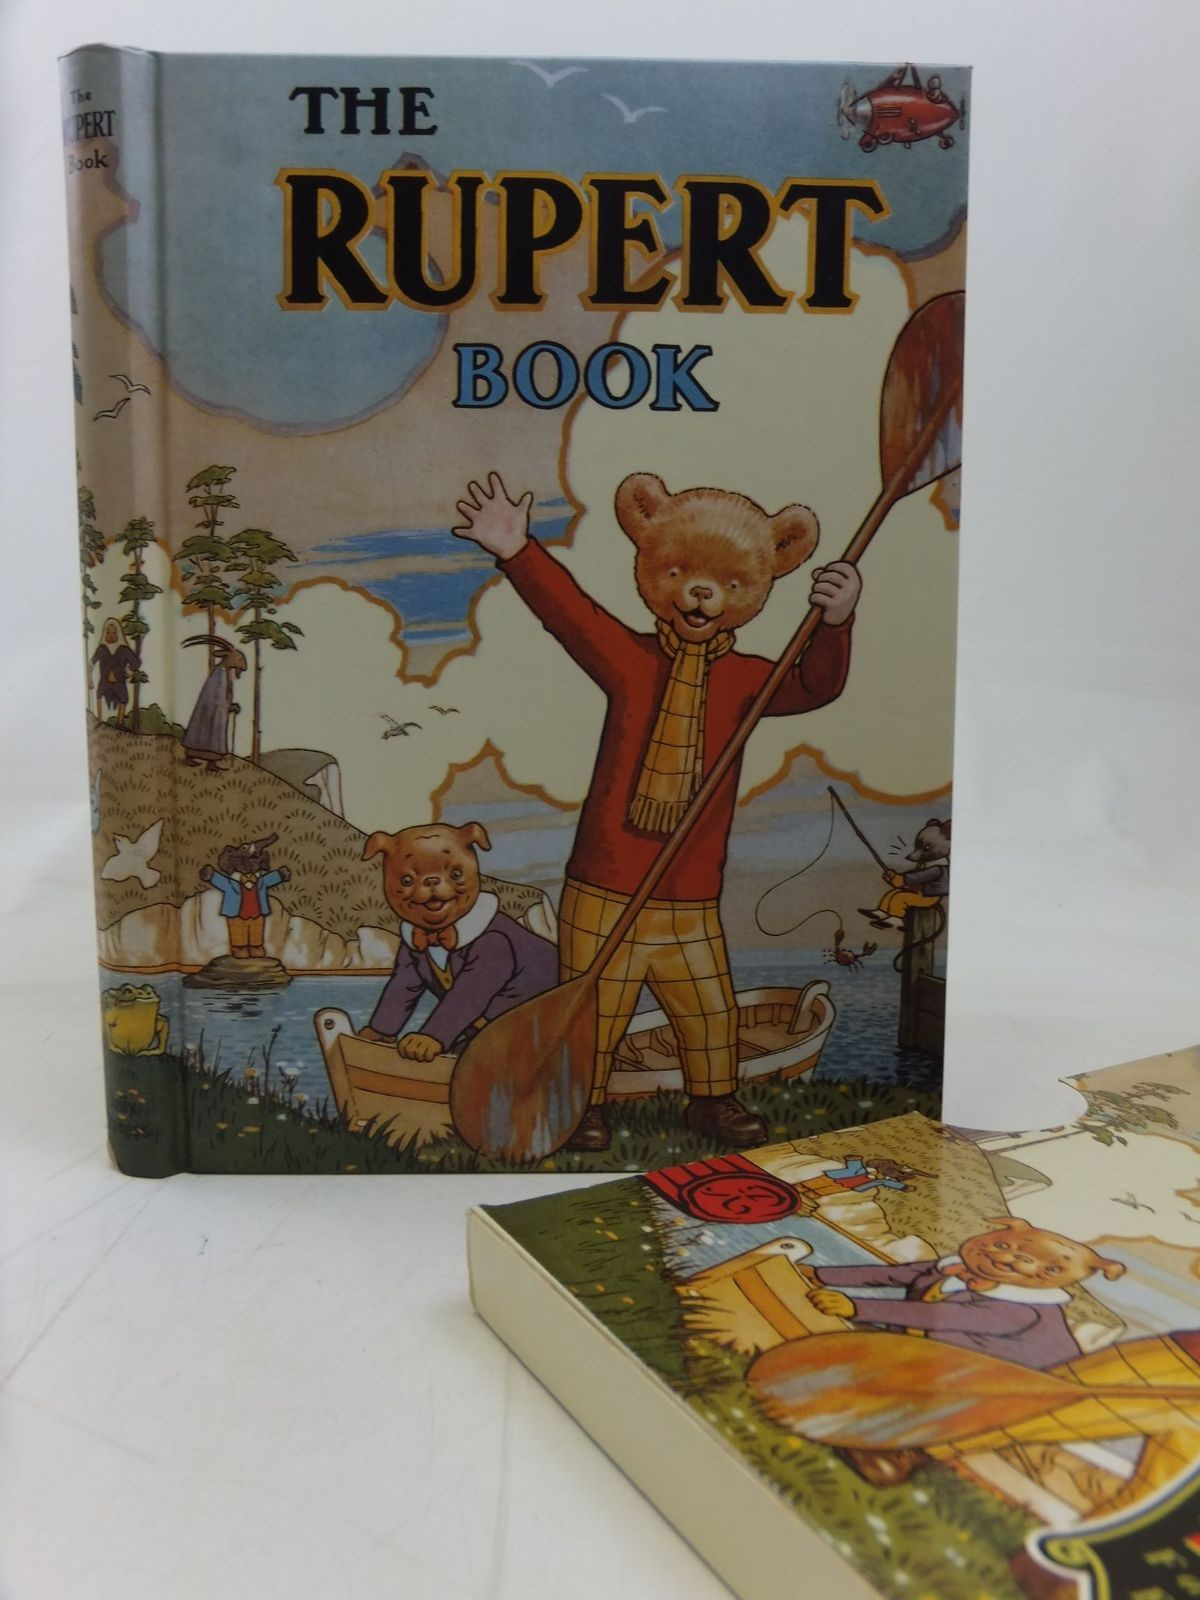 Photo of RUPERT ANNUAL 1941 (FACSIMILE) - THE RUPERT BOOK written by Bestall, Alfred illustrated by Bestall, Alfred published by Pedigree Books Limited (STOCK CODE: 2115433)  for sale by Stella & Rose's Books